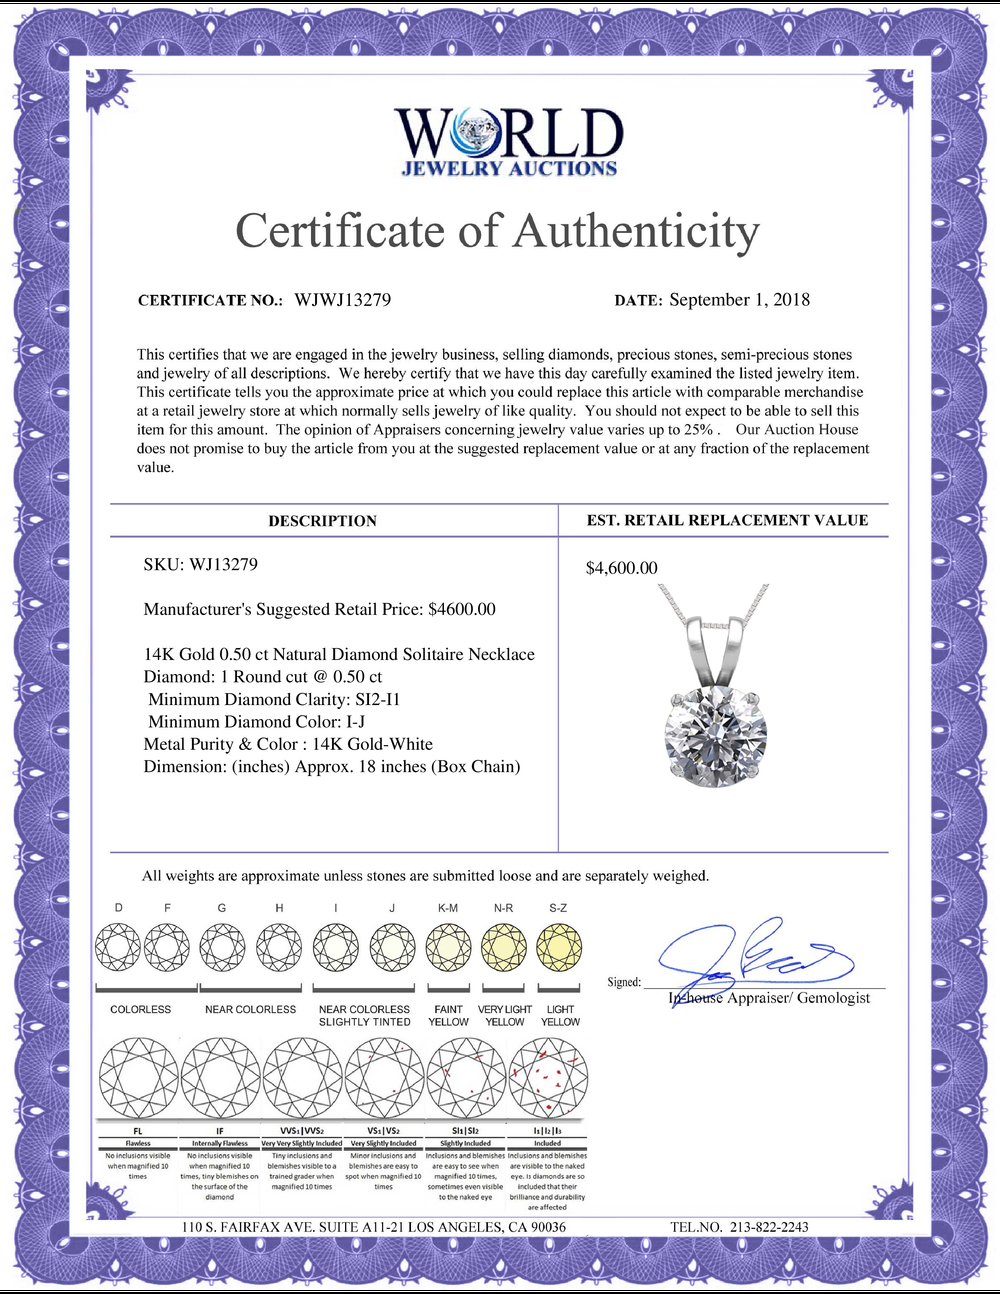 Lot 3005: 14K White Gold 0.50 ct Natural Diamond Solitaire Necklace - REF-115K5Y-WJ13279